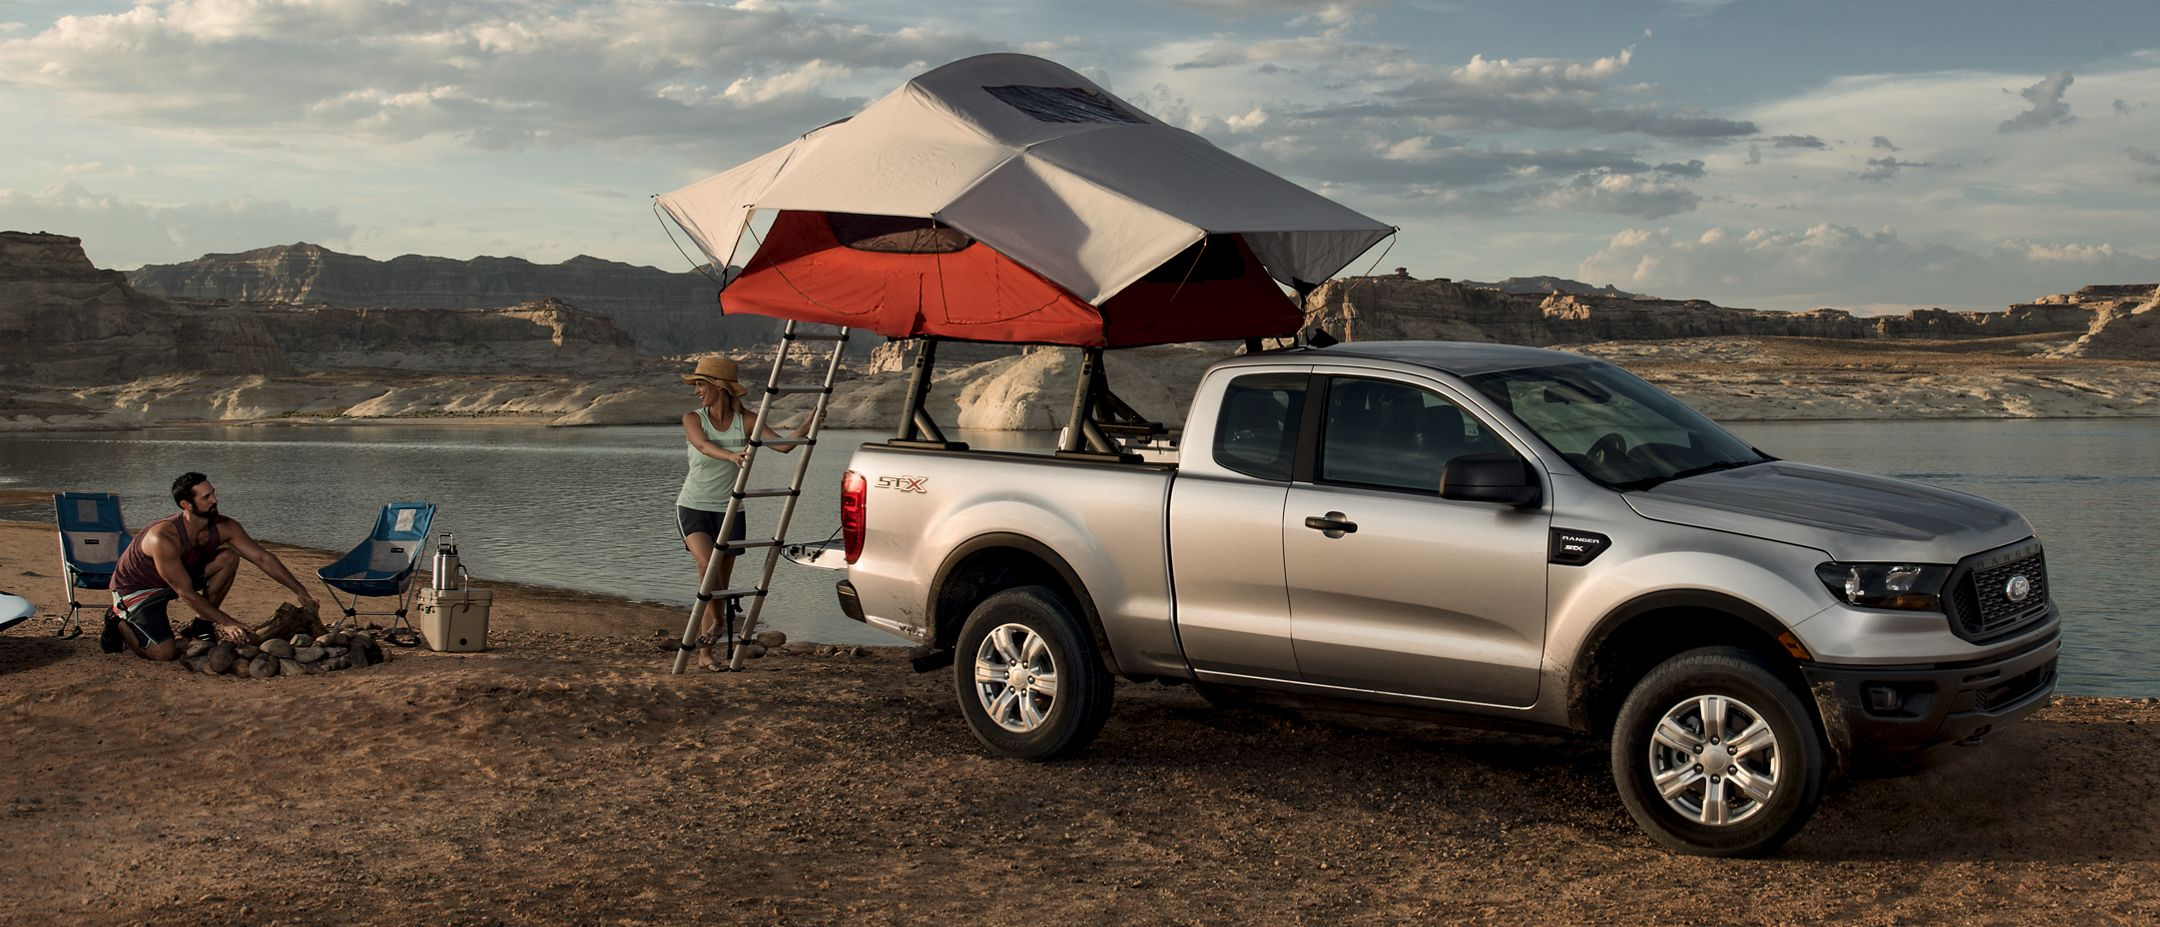 2019 Ford Ranger STX Appearance Package